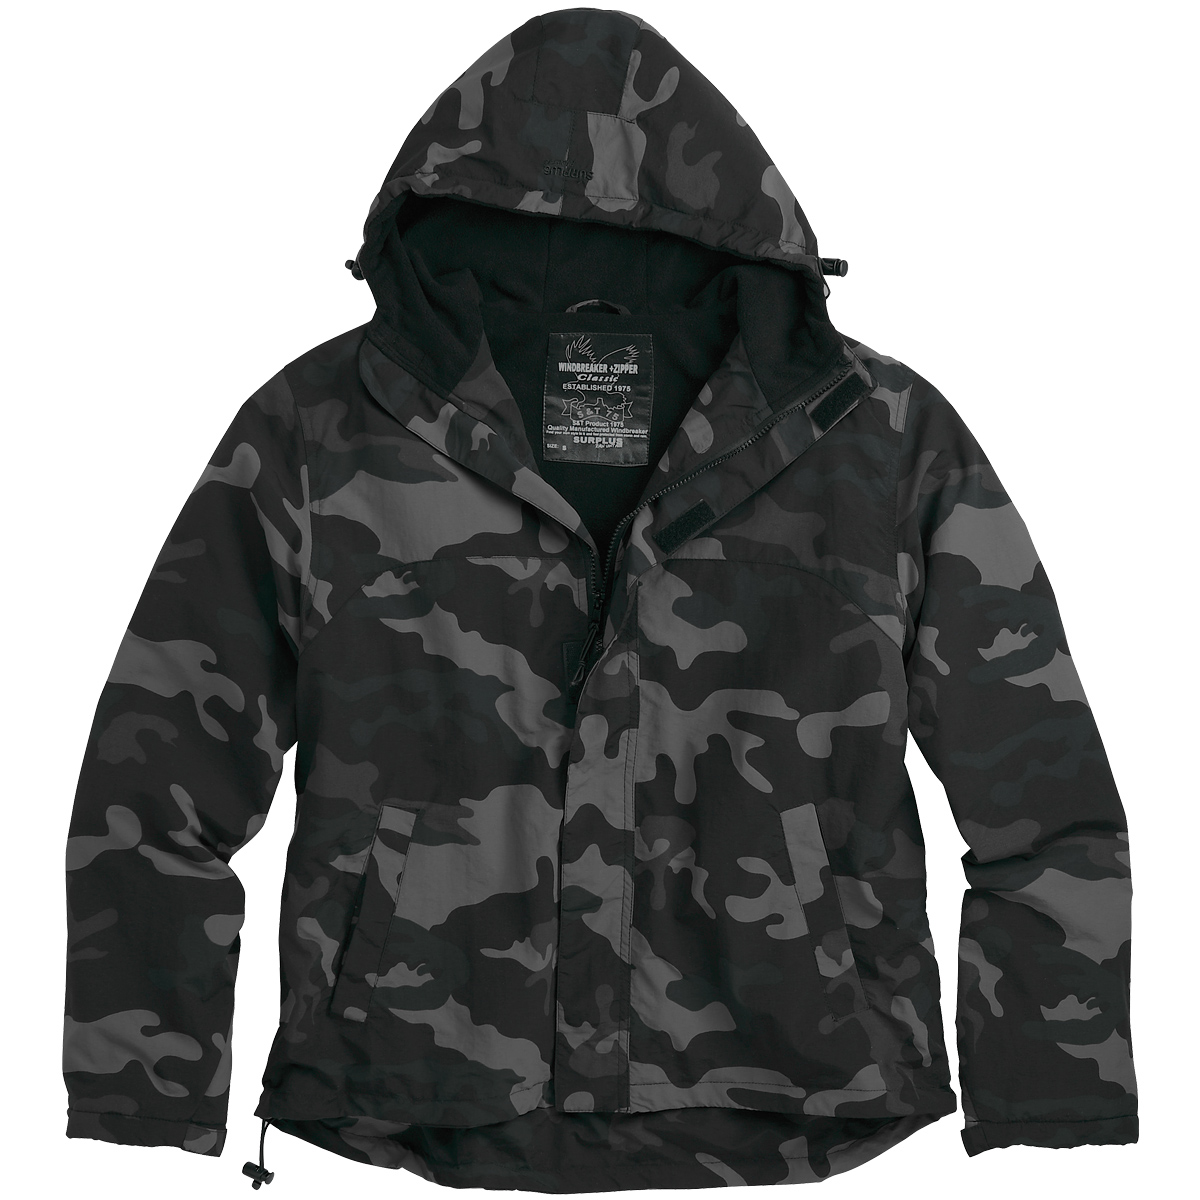 Camo Jackets. Showing 48 of results that match your query. Search Product Result. Product - All Purpose Camo Jacket. Product Image. Price. Product - hardrive Mens Blazer/Coat Sport Single Breasted US Size Casual Distressed Jacket Black Khaki Brown Camouflage .